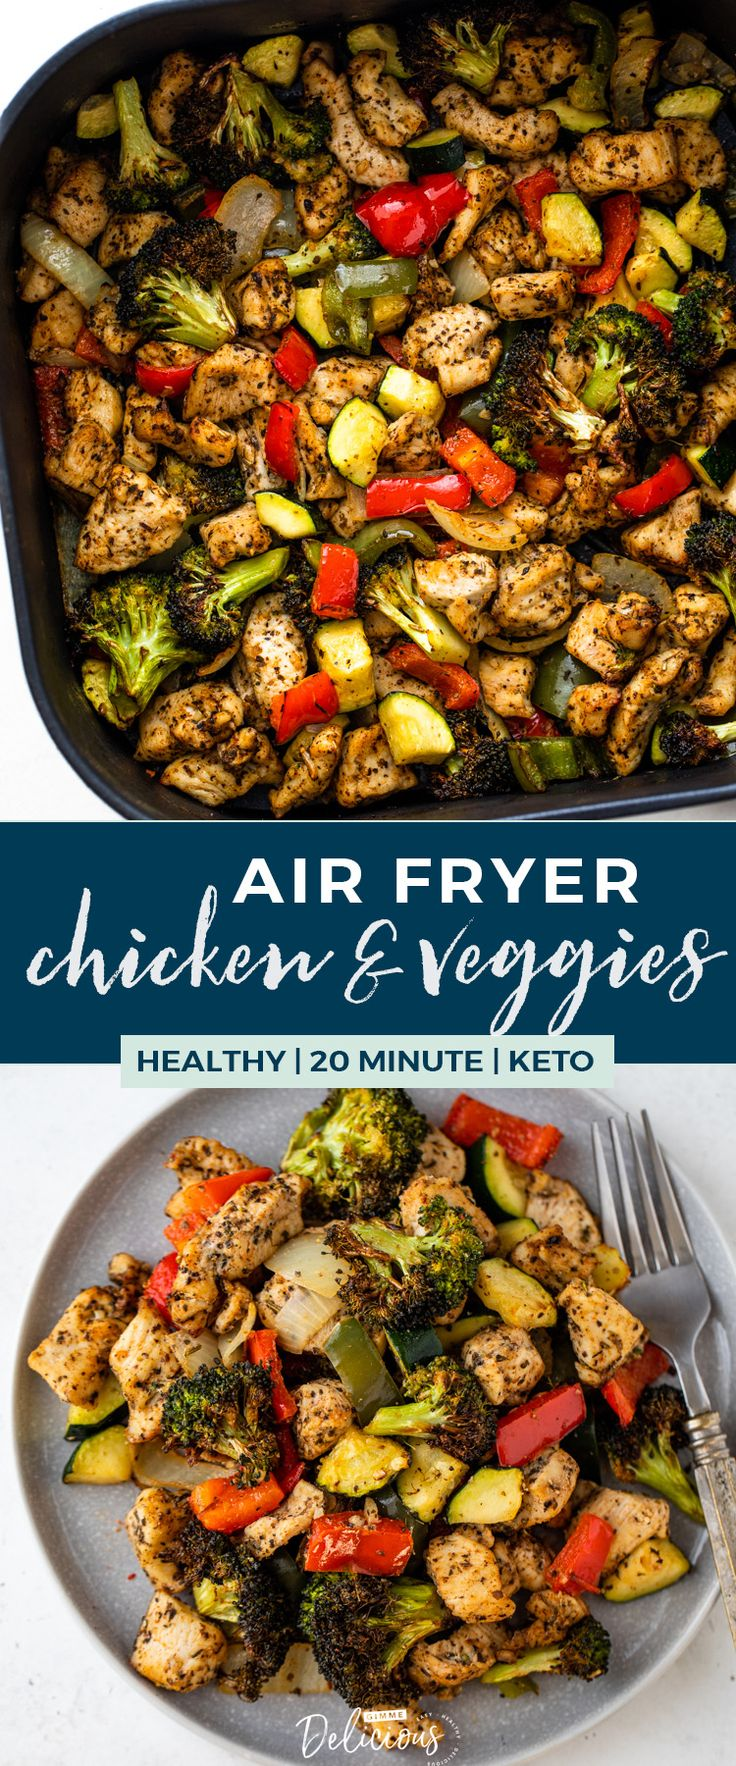 Healthy Air Fryer Chicken and Veggies Gimme Delicious in